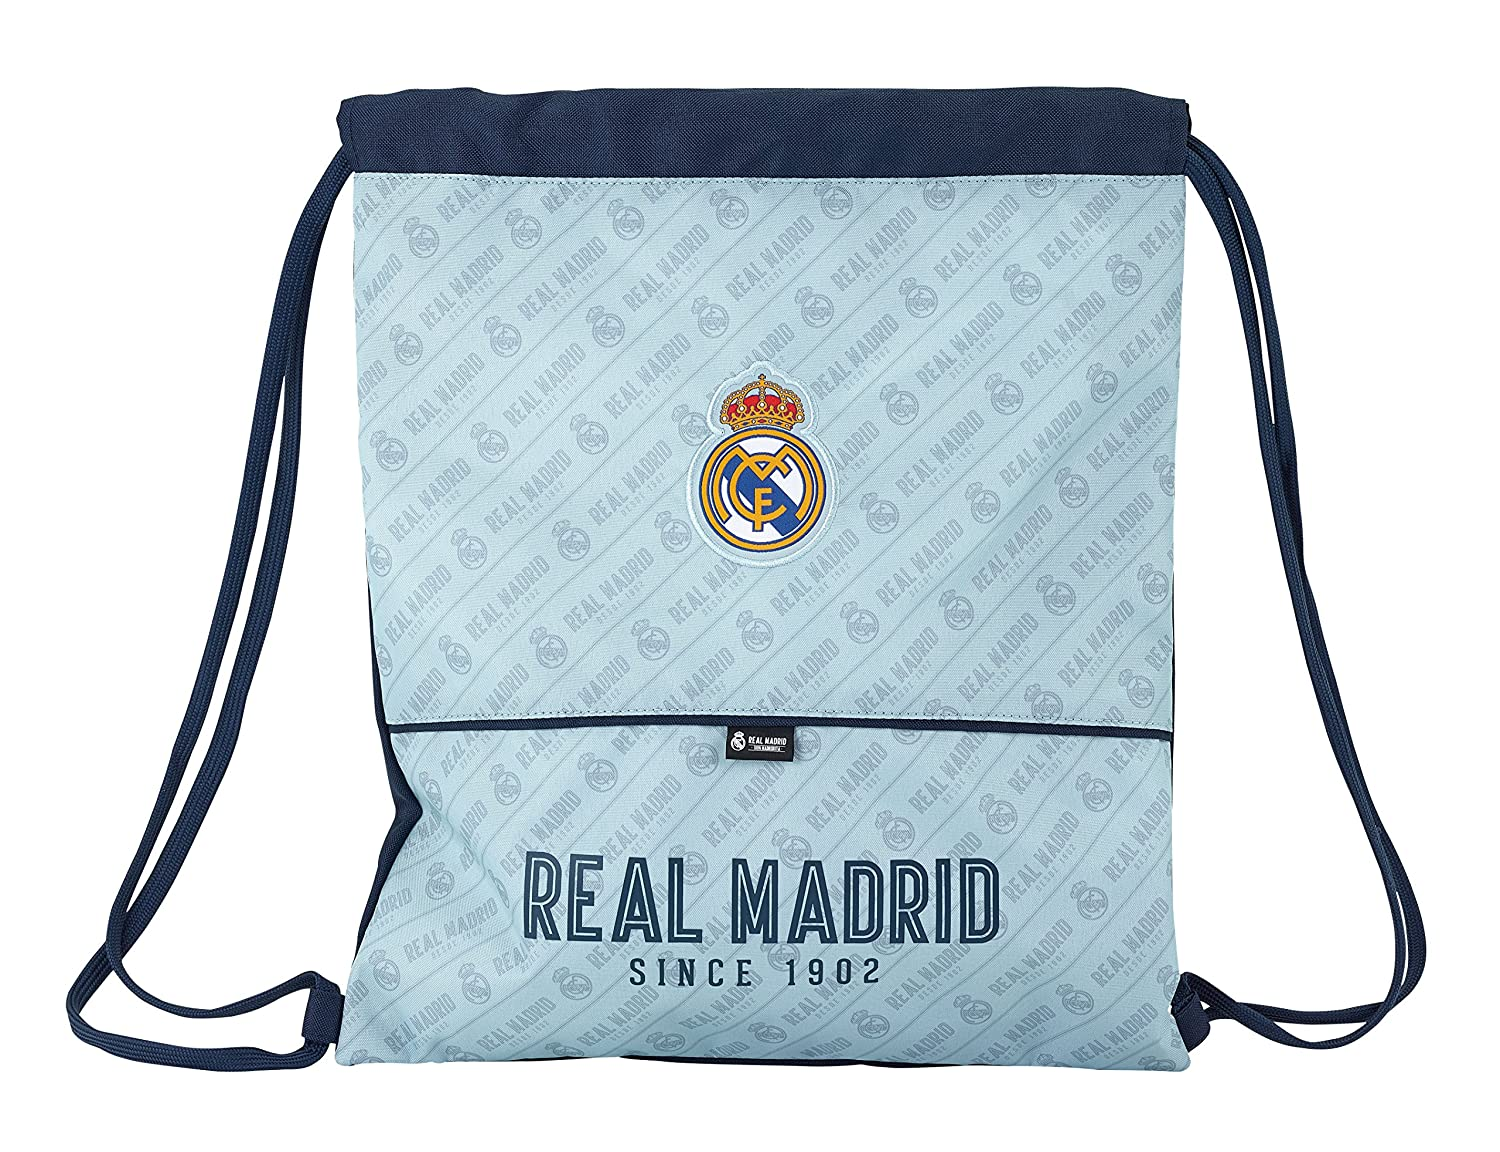 Grand Sac plat Real Madrid Corporativa Sac plat officiel